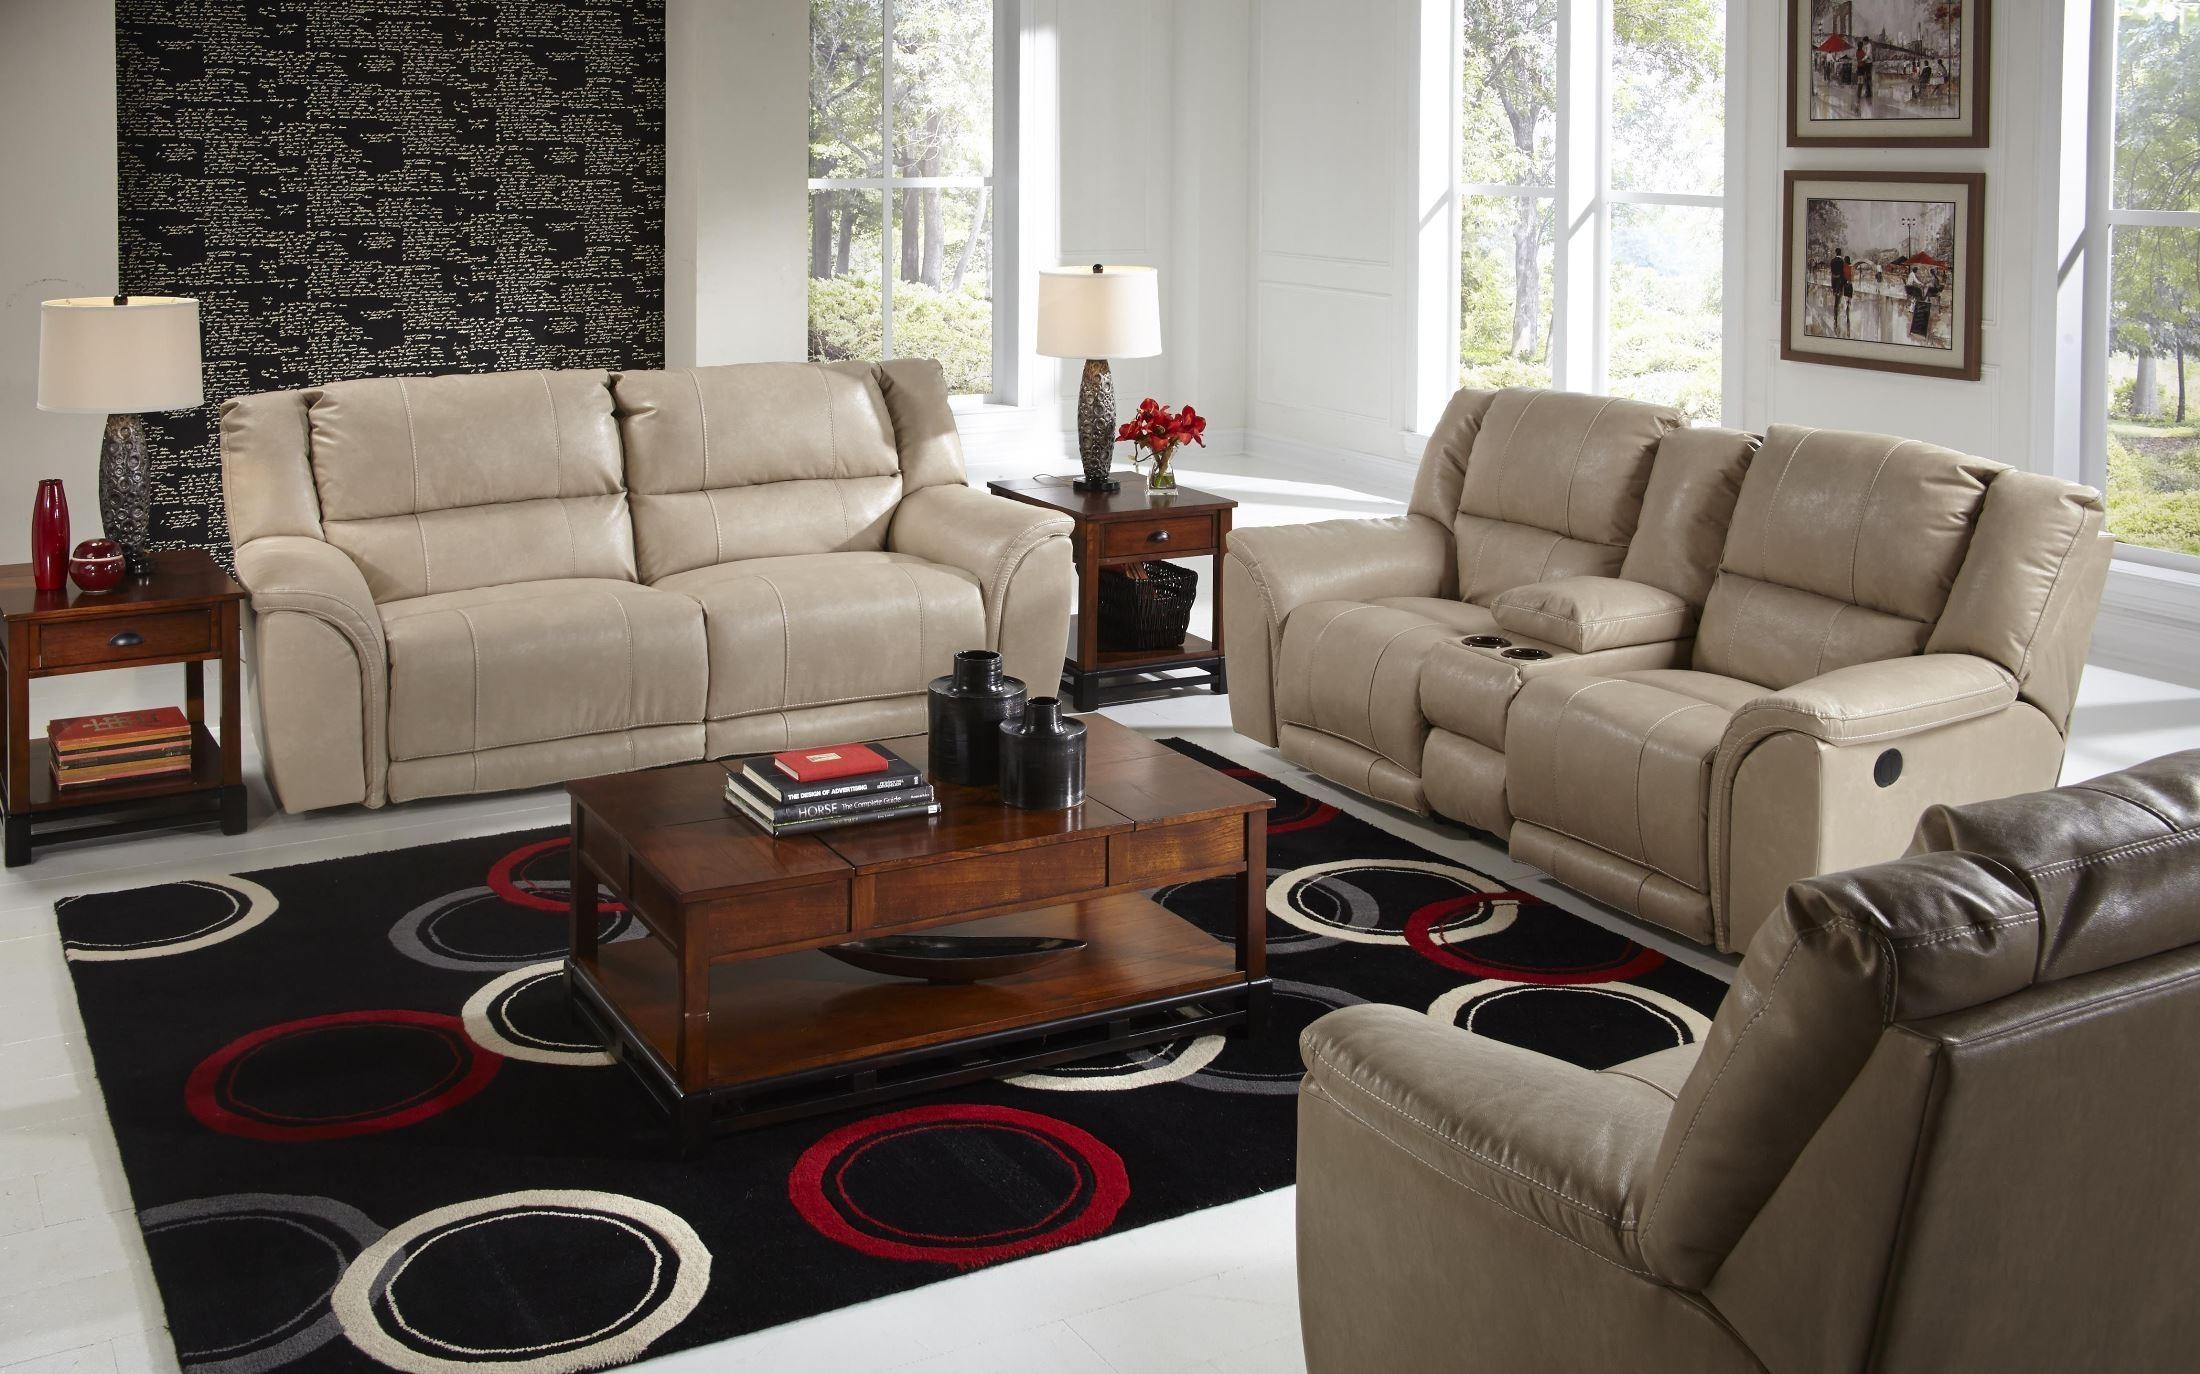 Carmine Pebble Power Reclining Living Room Set From Catnapper Intended For Catnapper Recliner Sofas (Image 5 of 20)